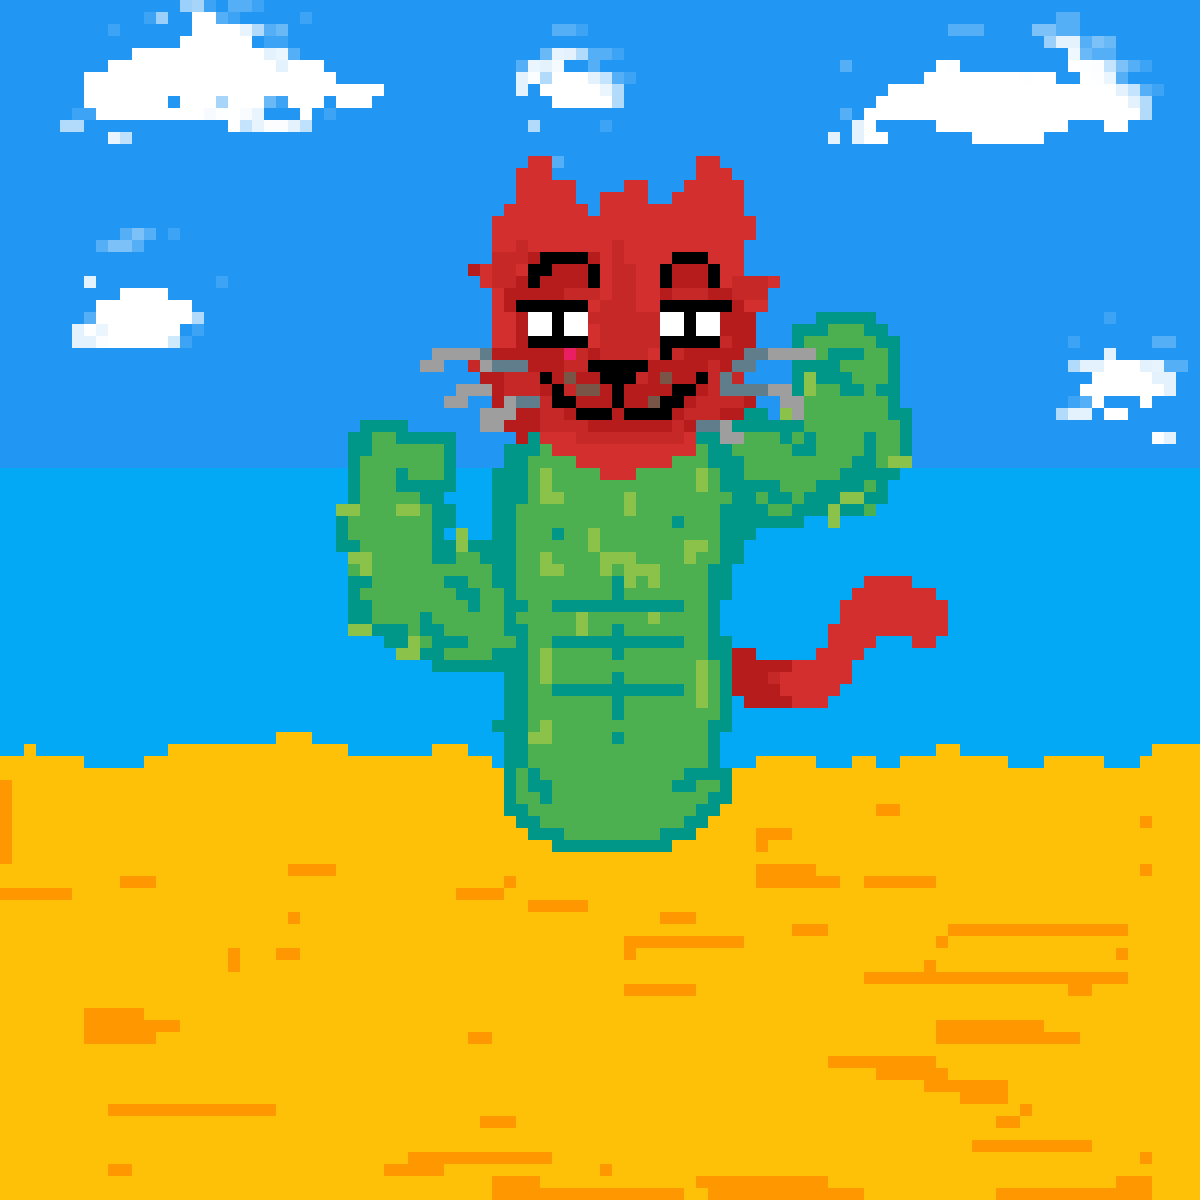 CAT-tus (very macho cactus)  by yesduhh